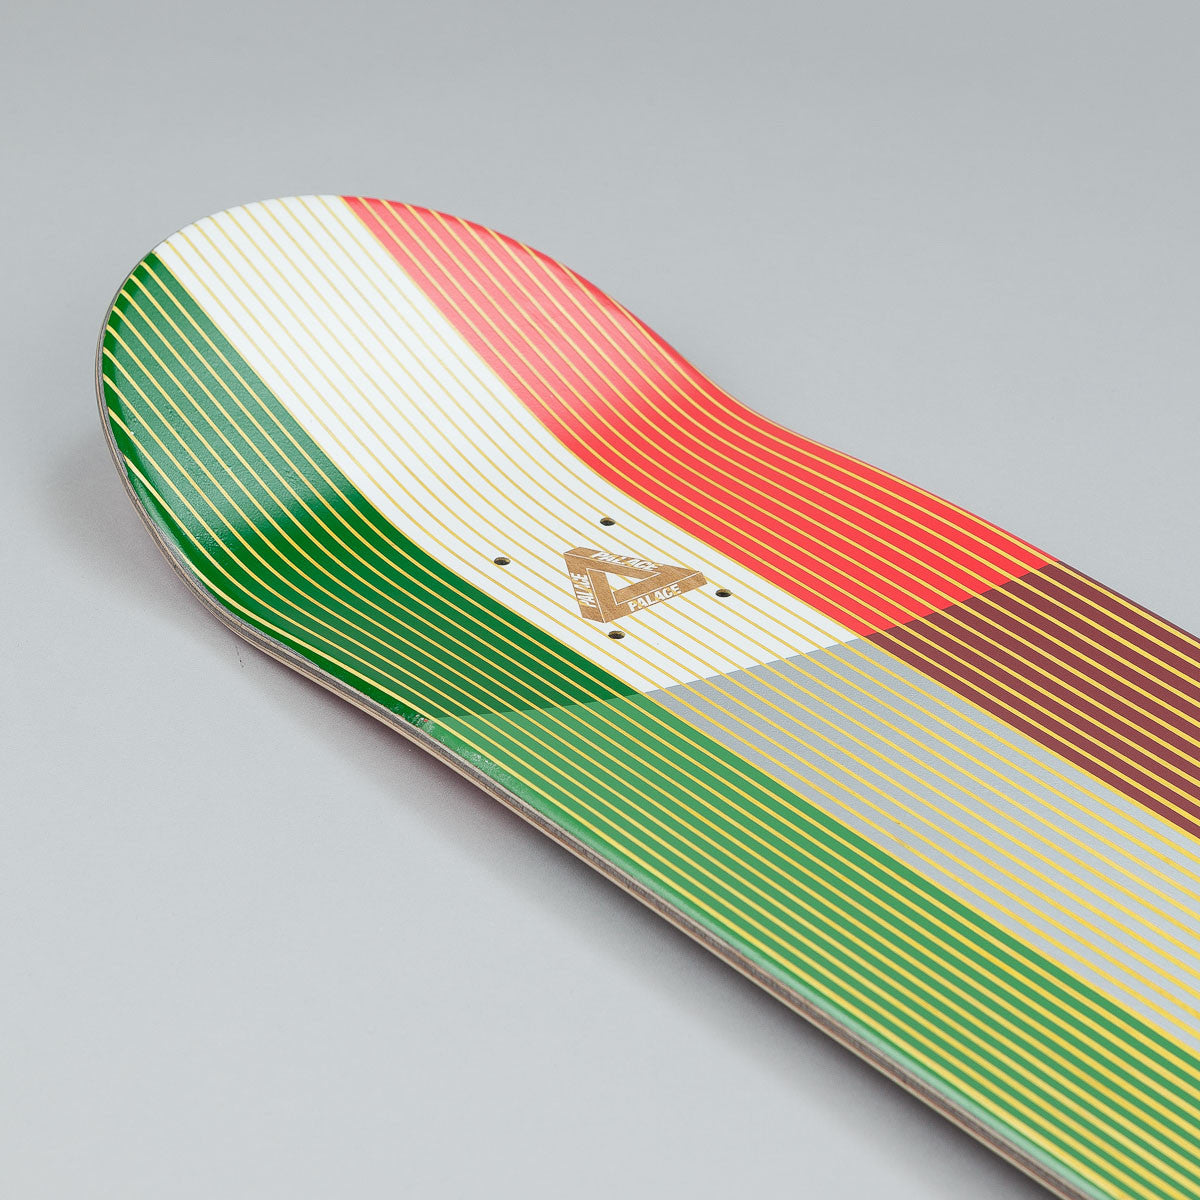 Palace Italia New Linear Deck - 8.3""